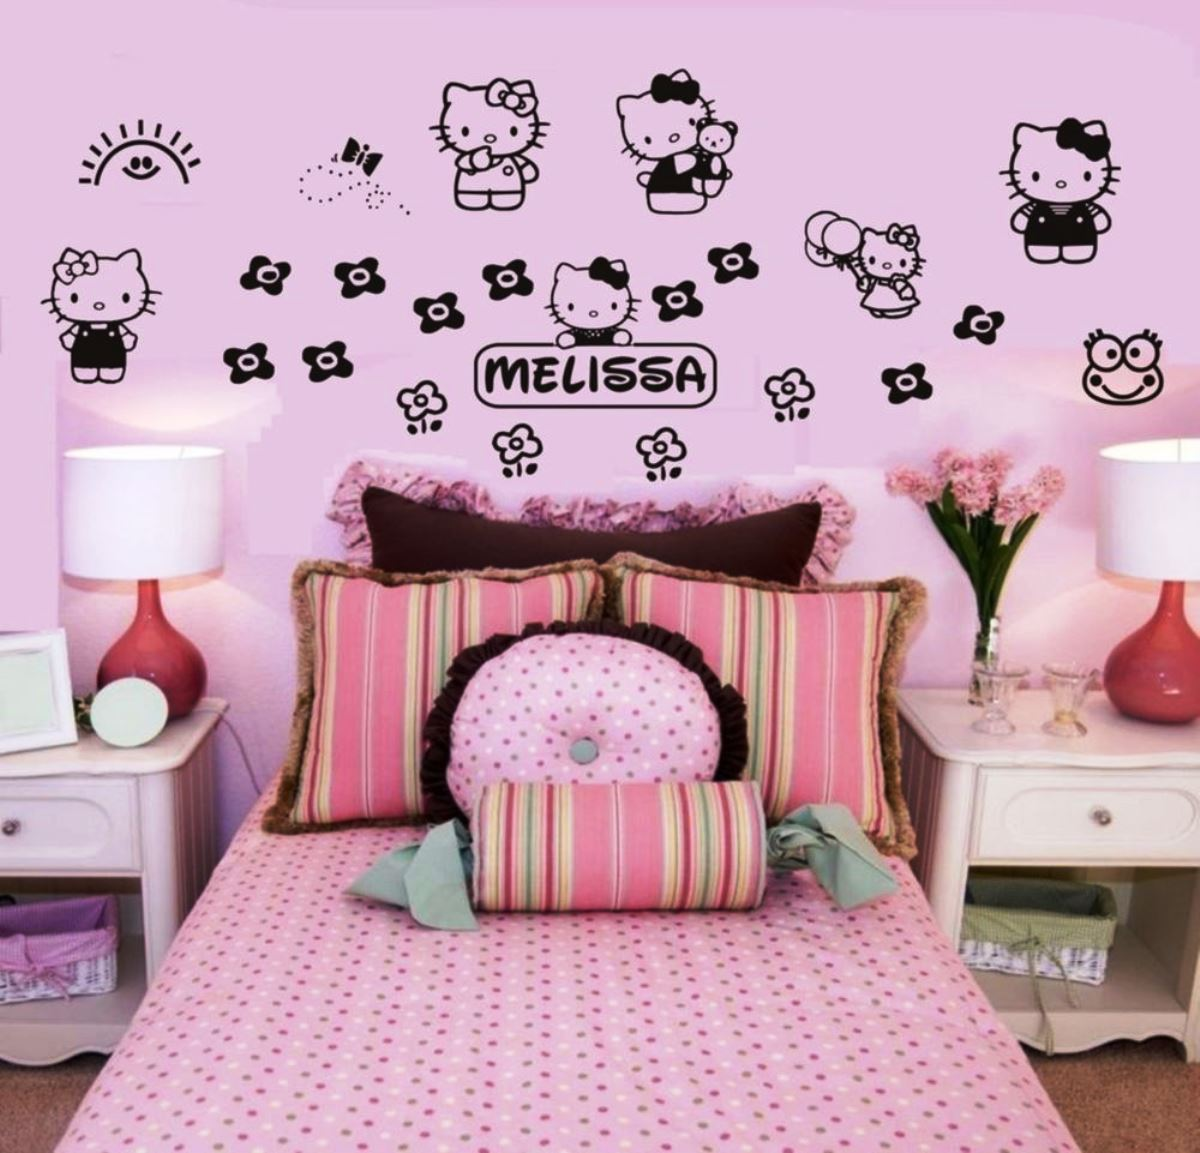 Small Bathroom Ideas Hello Kitty Bedroom Decorations